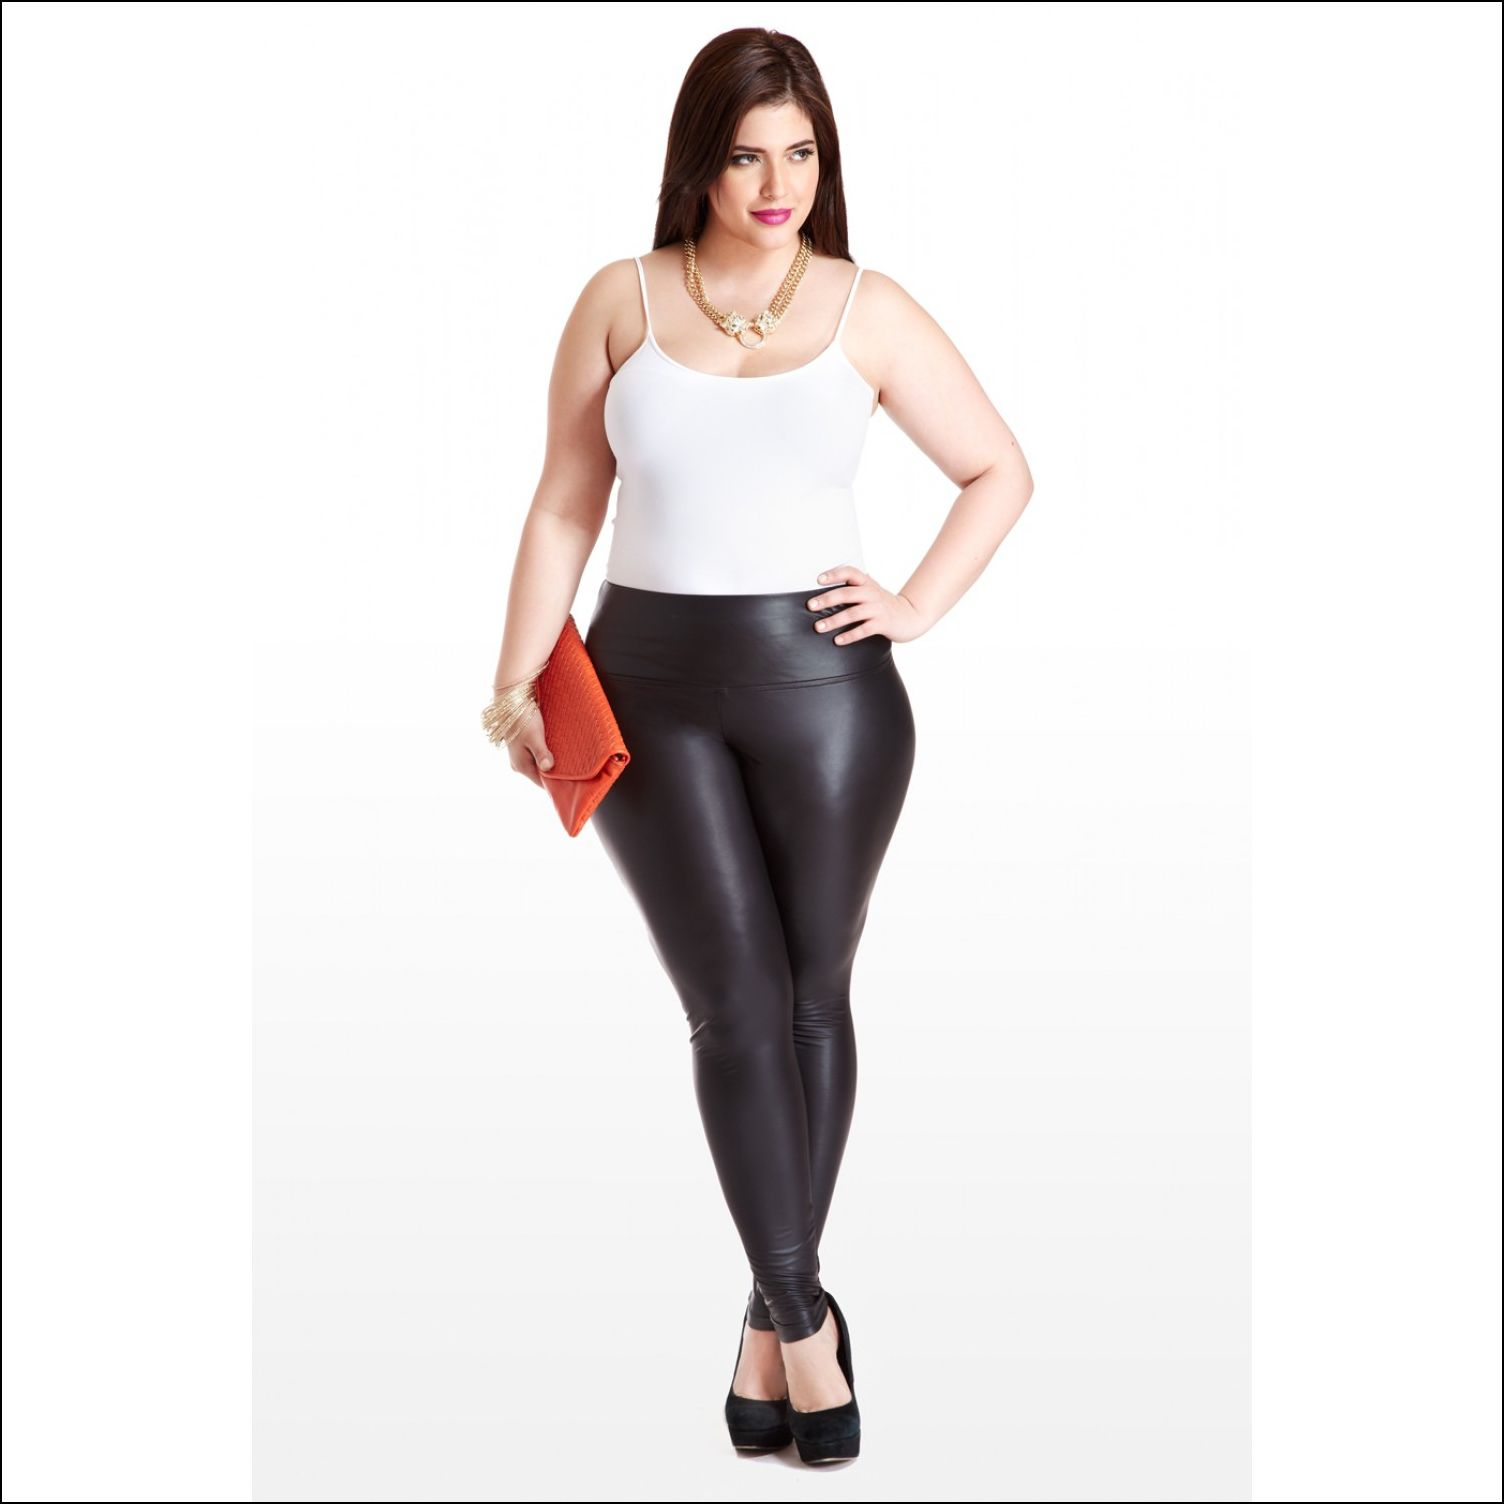 Plus Size Leggings: Suits Beautifully